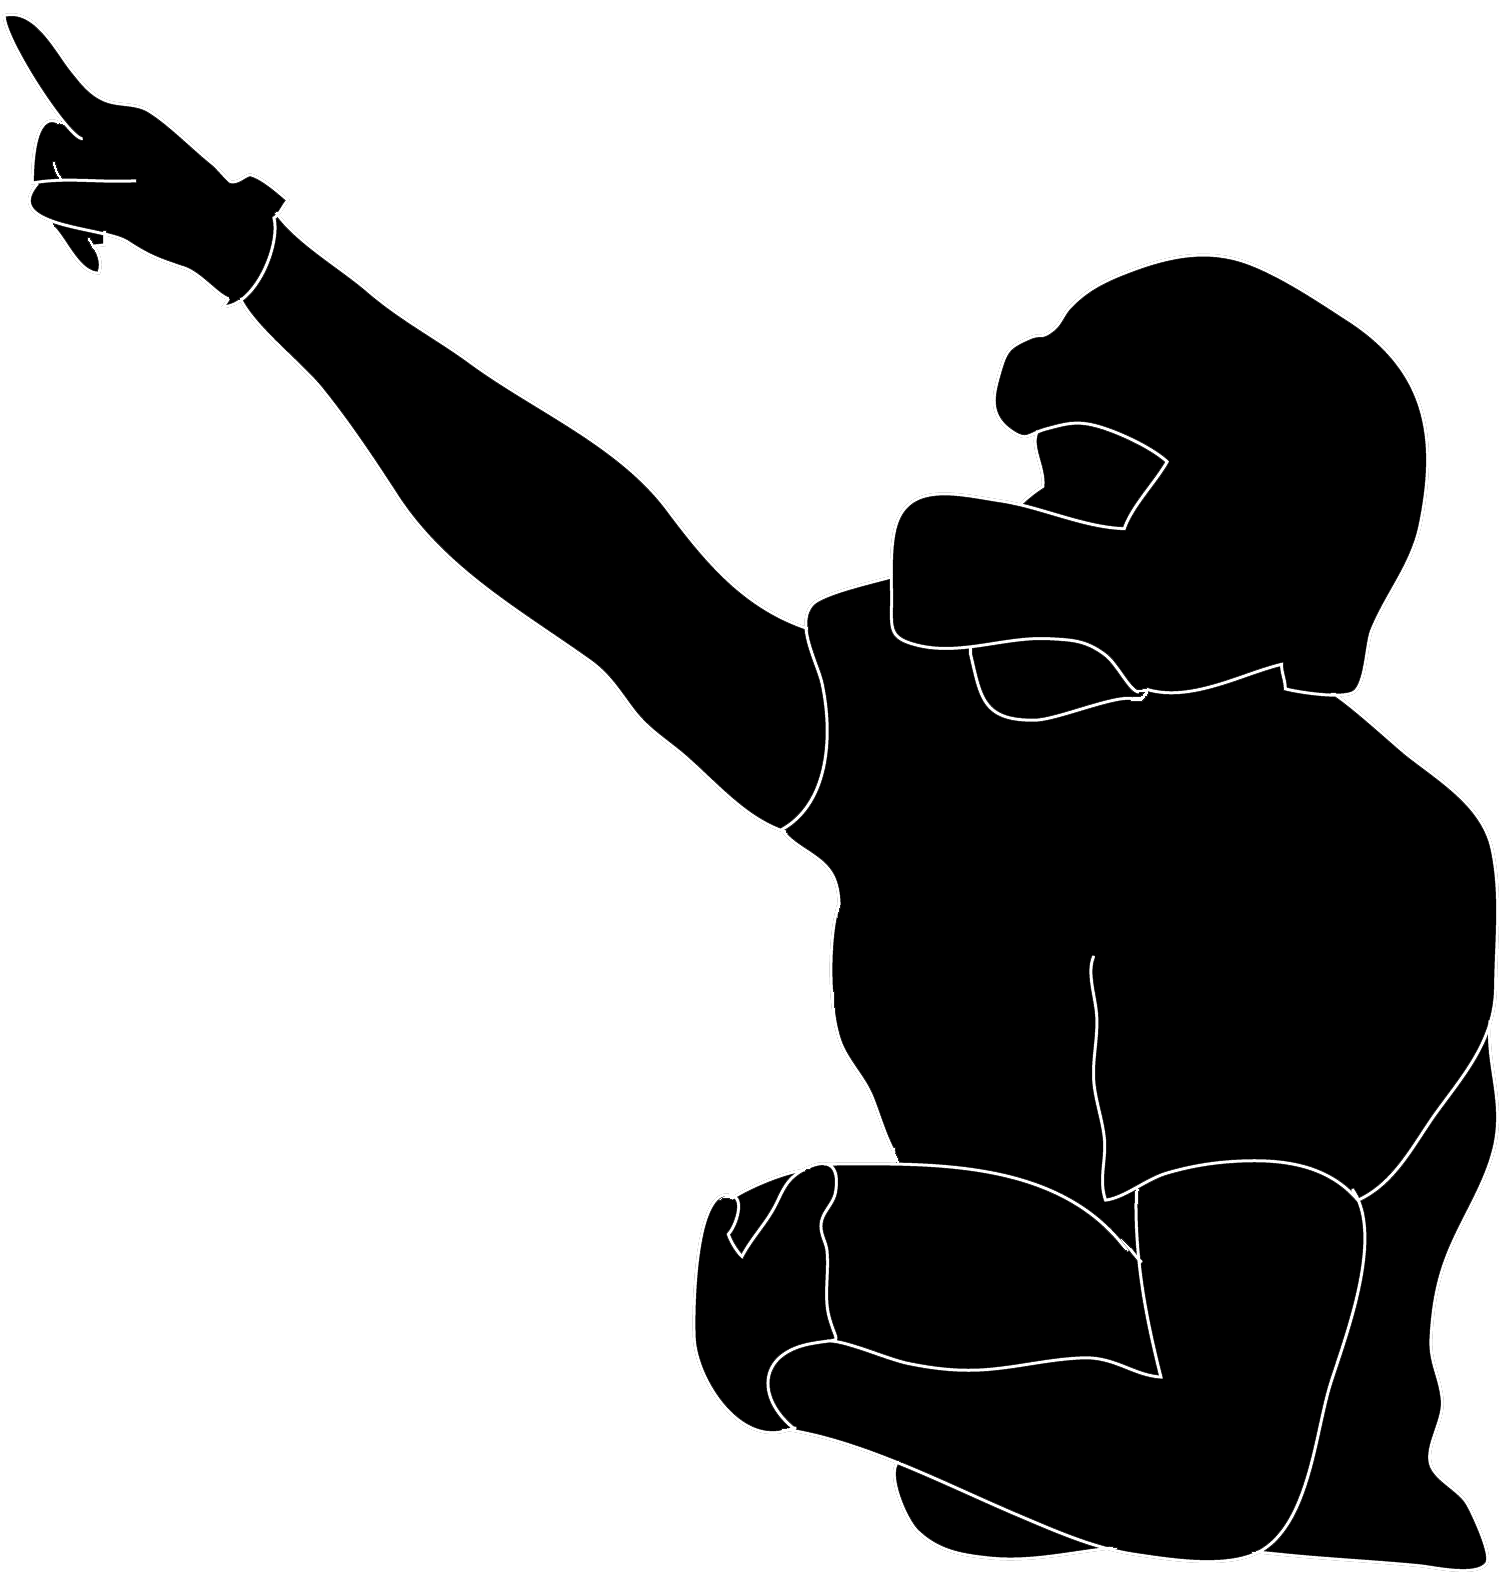 Nfl silhouette at getdrawings. Football images clipart